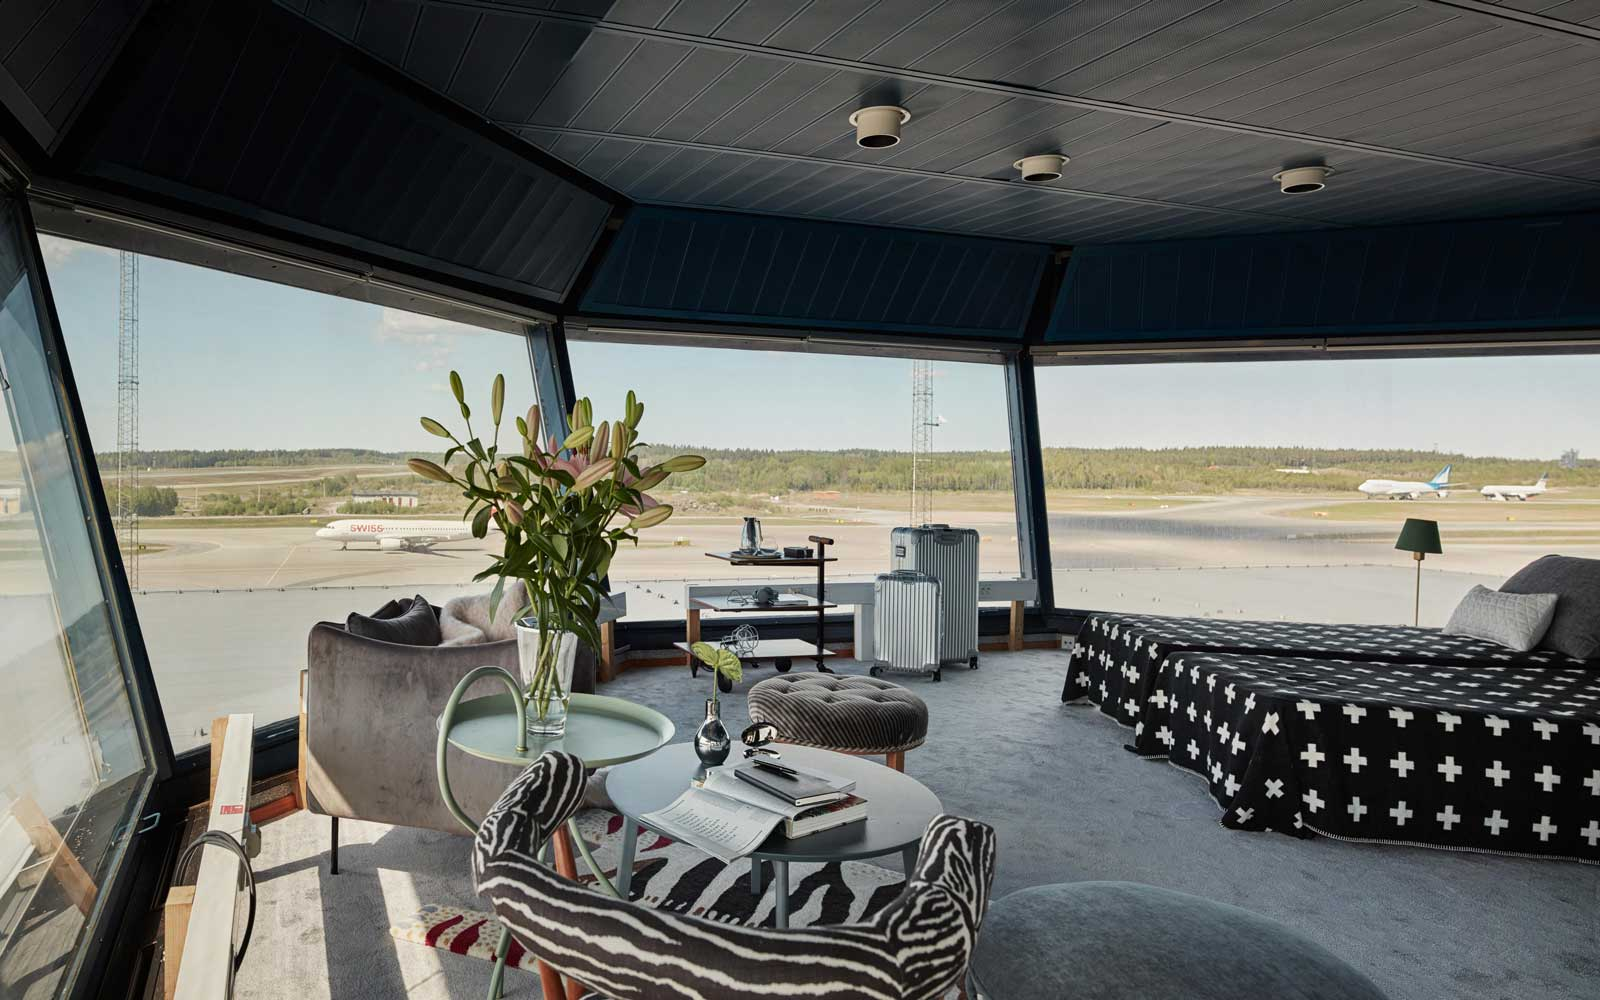 Airport control tower vacation rental